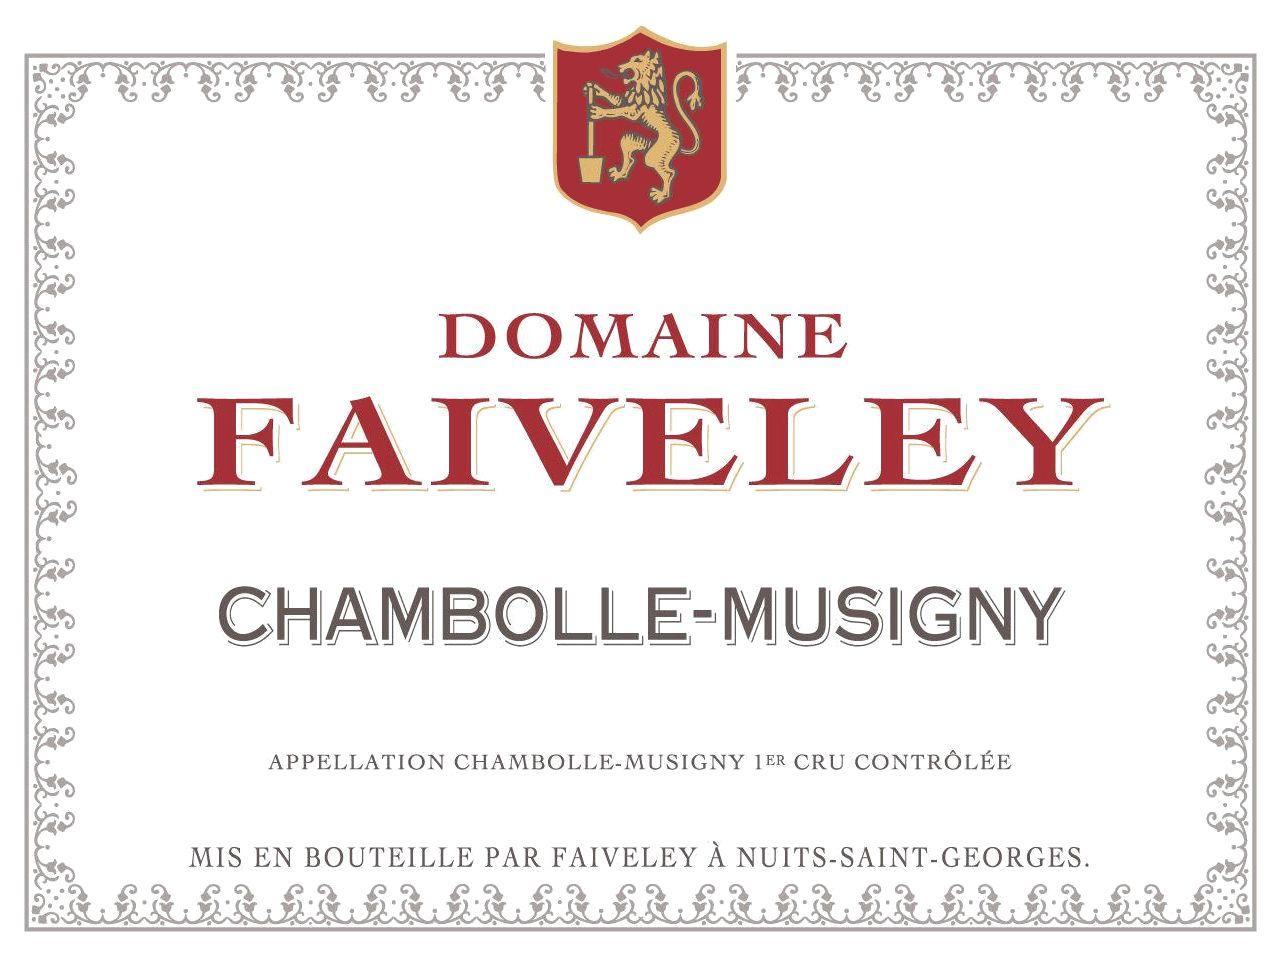 Domaine Faiveley Chambolle-Musigny 2010  Front Label